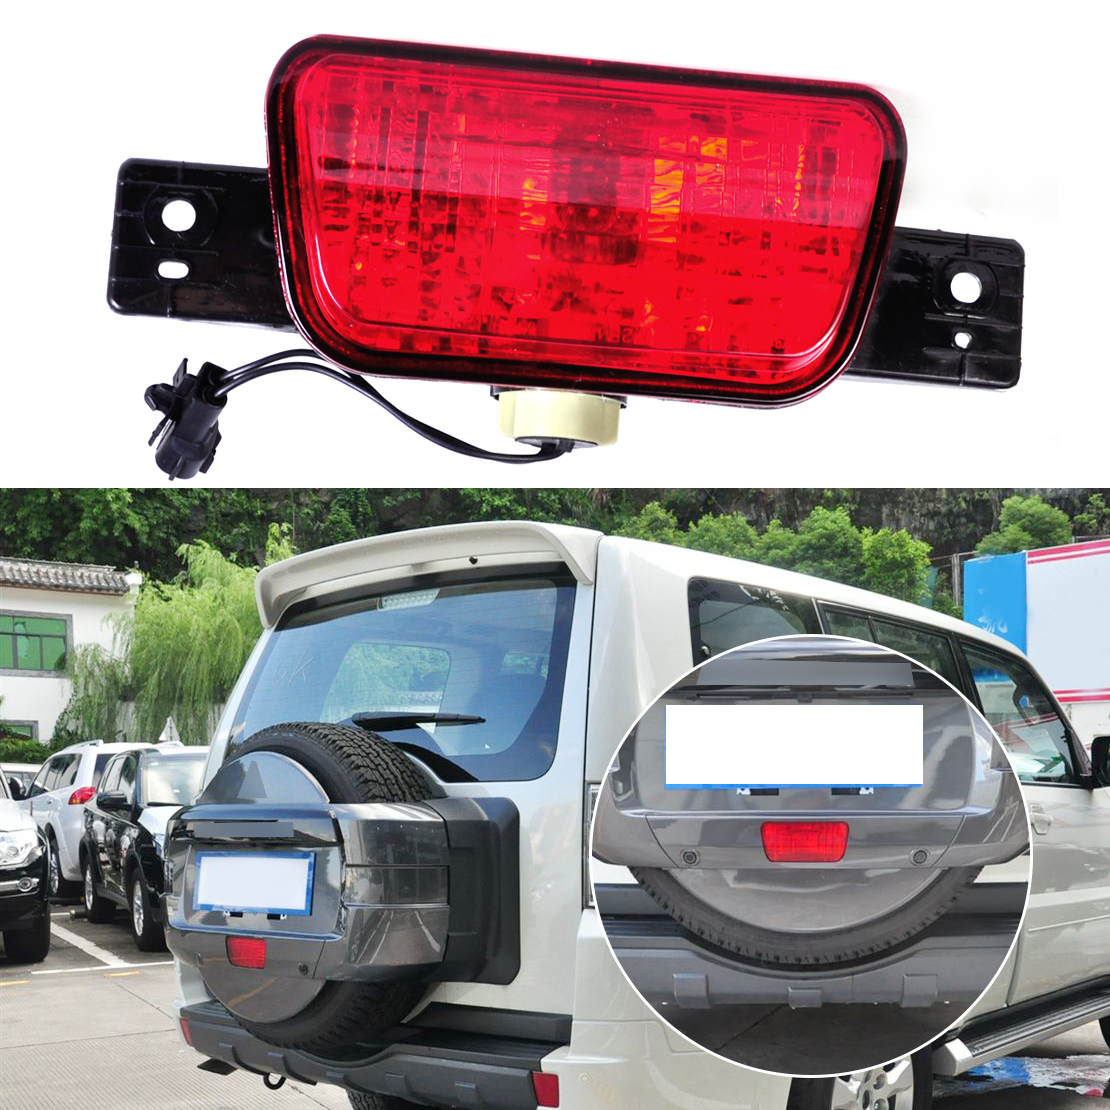 DWCX Rear Spare Tire Lamp Tail Bumper Light Fog Lamp for Mitsubishi Pajero Shogun 2007 2008 2009 2010 2011 2012 2013 2014 2015 car rear fog bumper lamp reverse brake lights for nissan qashqai 2007 2008 2009 2010 2011 2012 2013 2014 2015